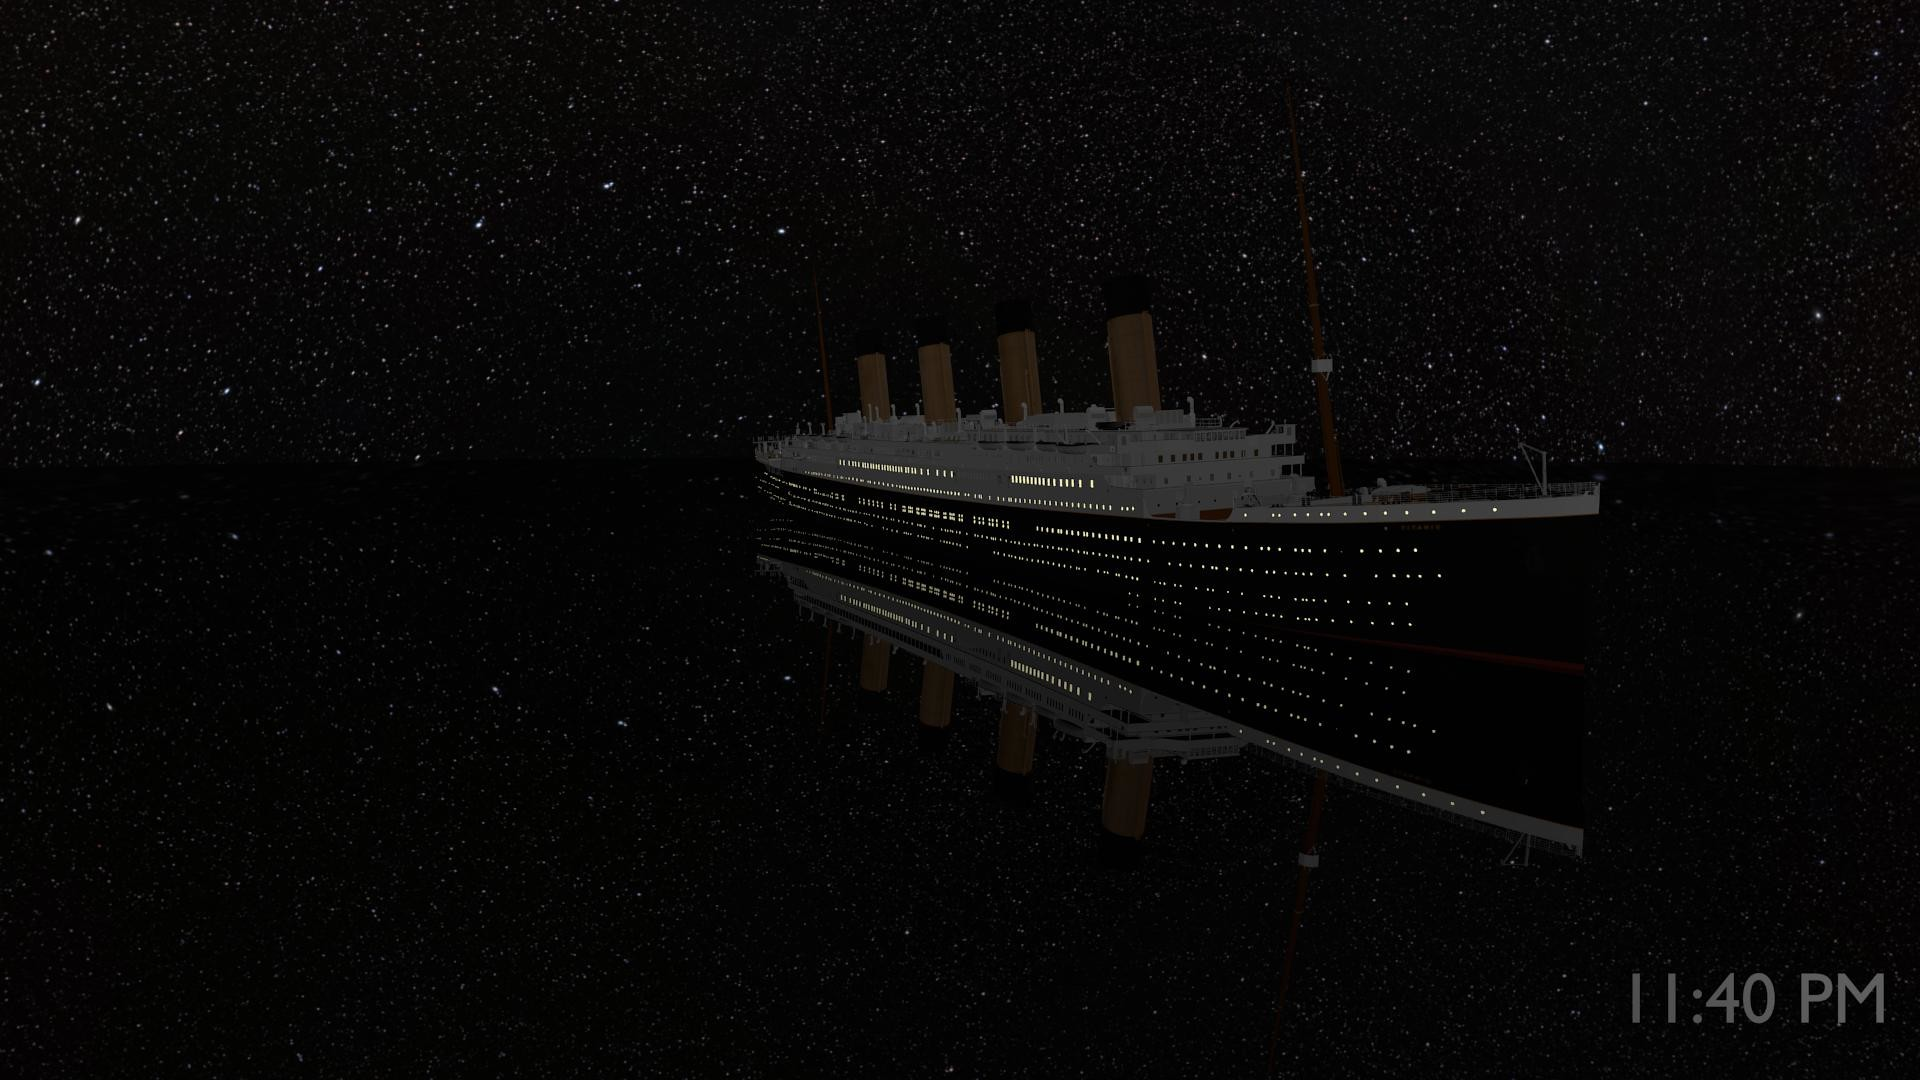 1920x1080 Titanic sank due to enormous uncontrollable fire, not iceberg, experts  claim - Rarely seen images of the Titanic before it left Southampton have  furthered ...